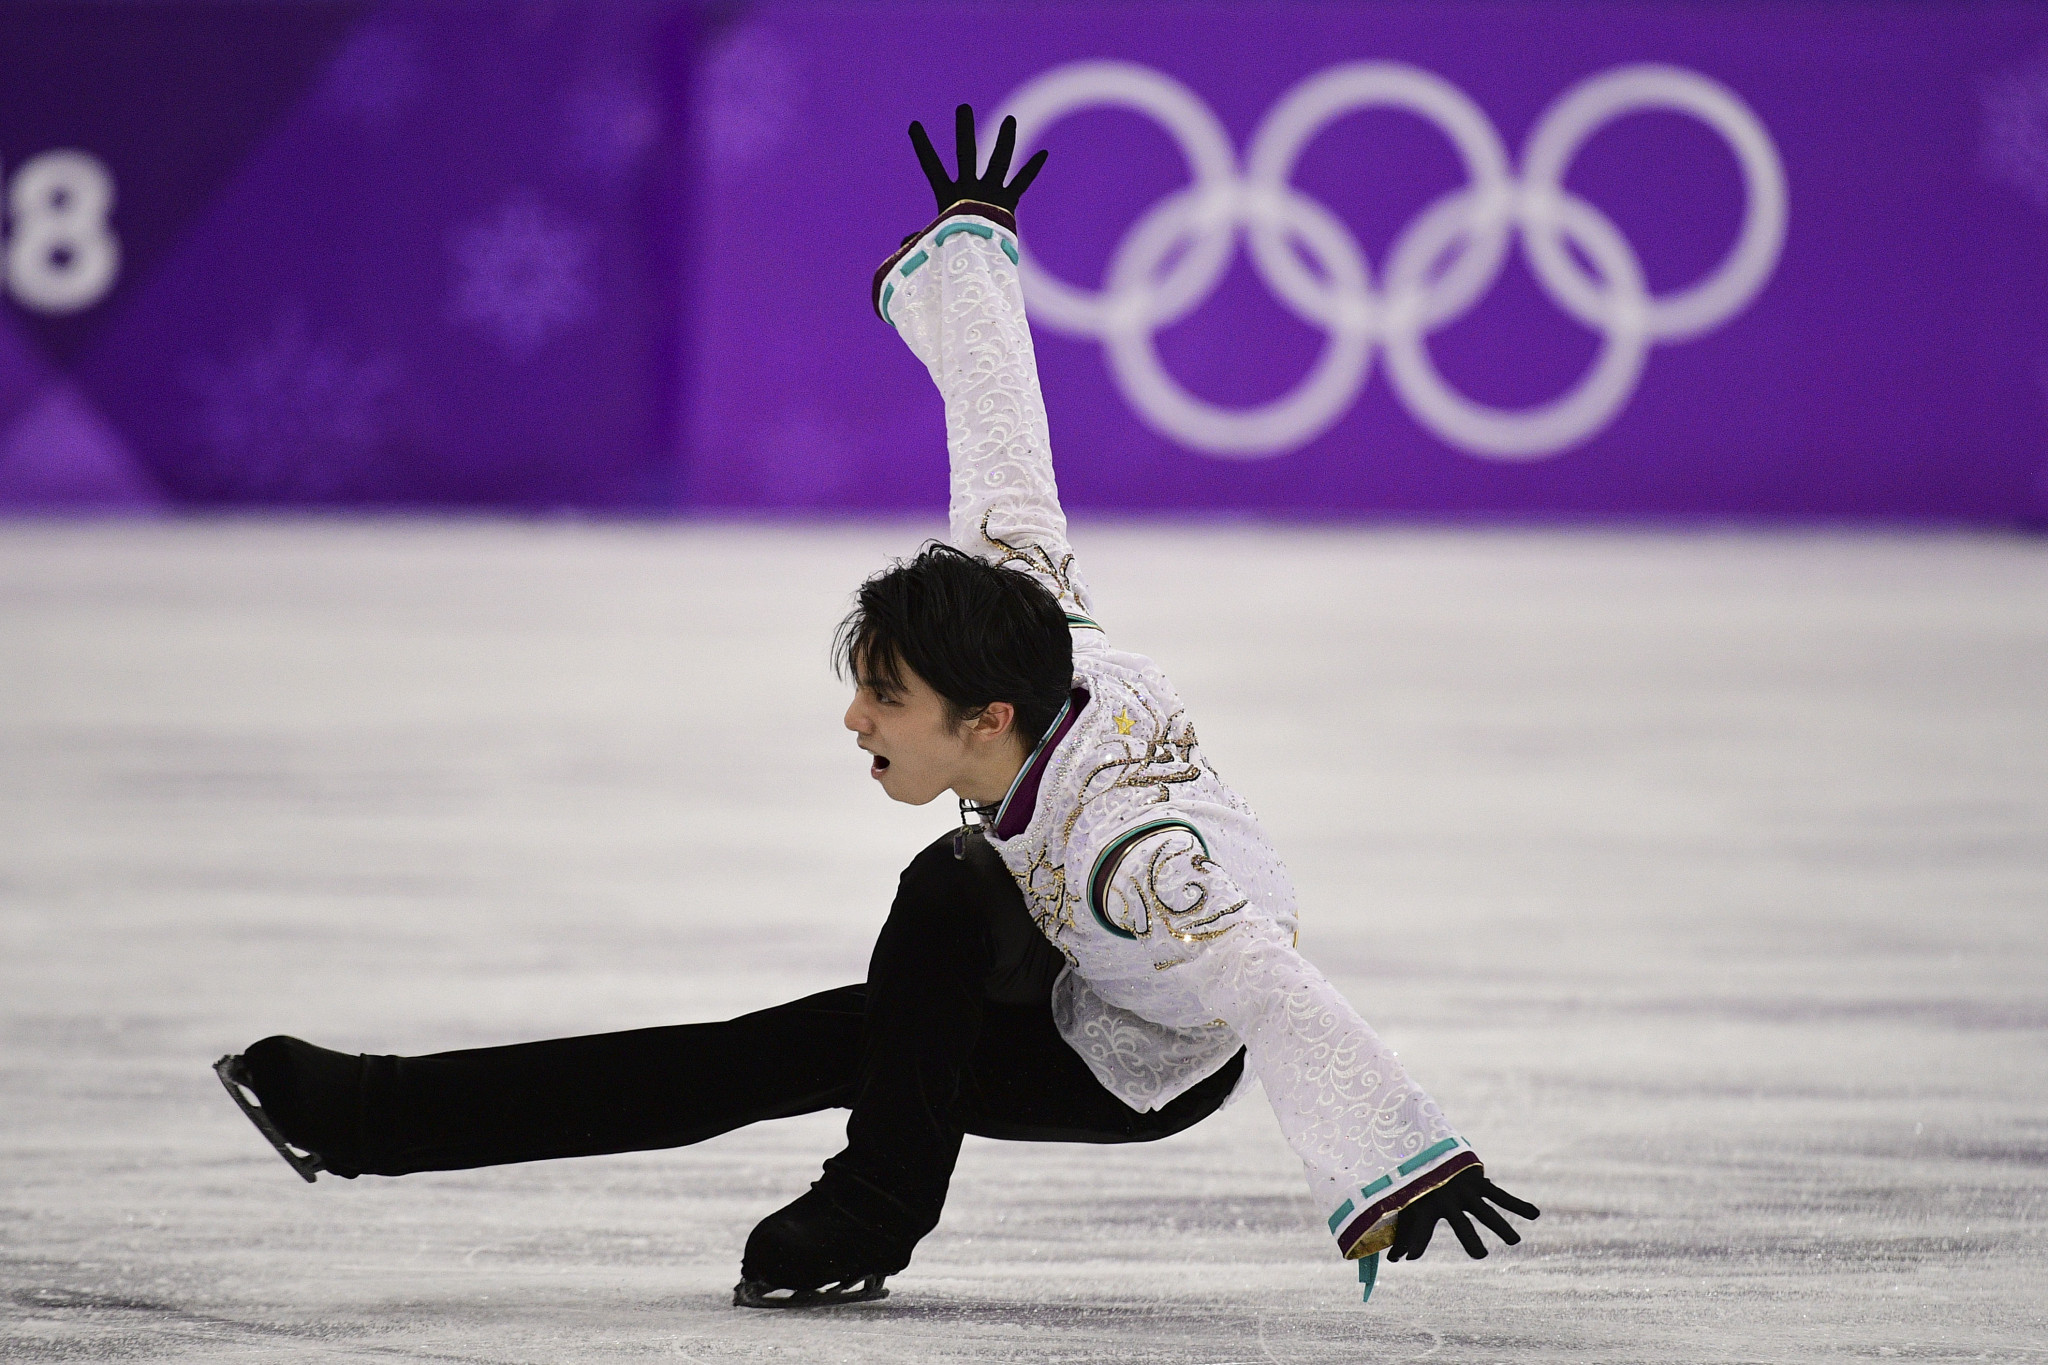 Reigning Olympic champion Yuzuru Hanyu is among those set to compete in the Grand Prix series ©Getty Images